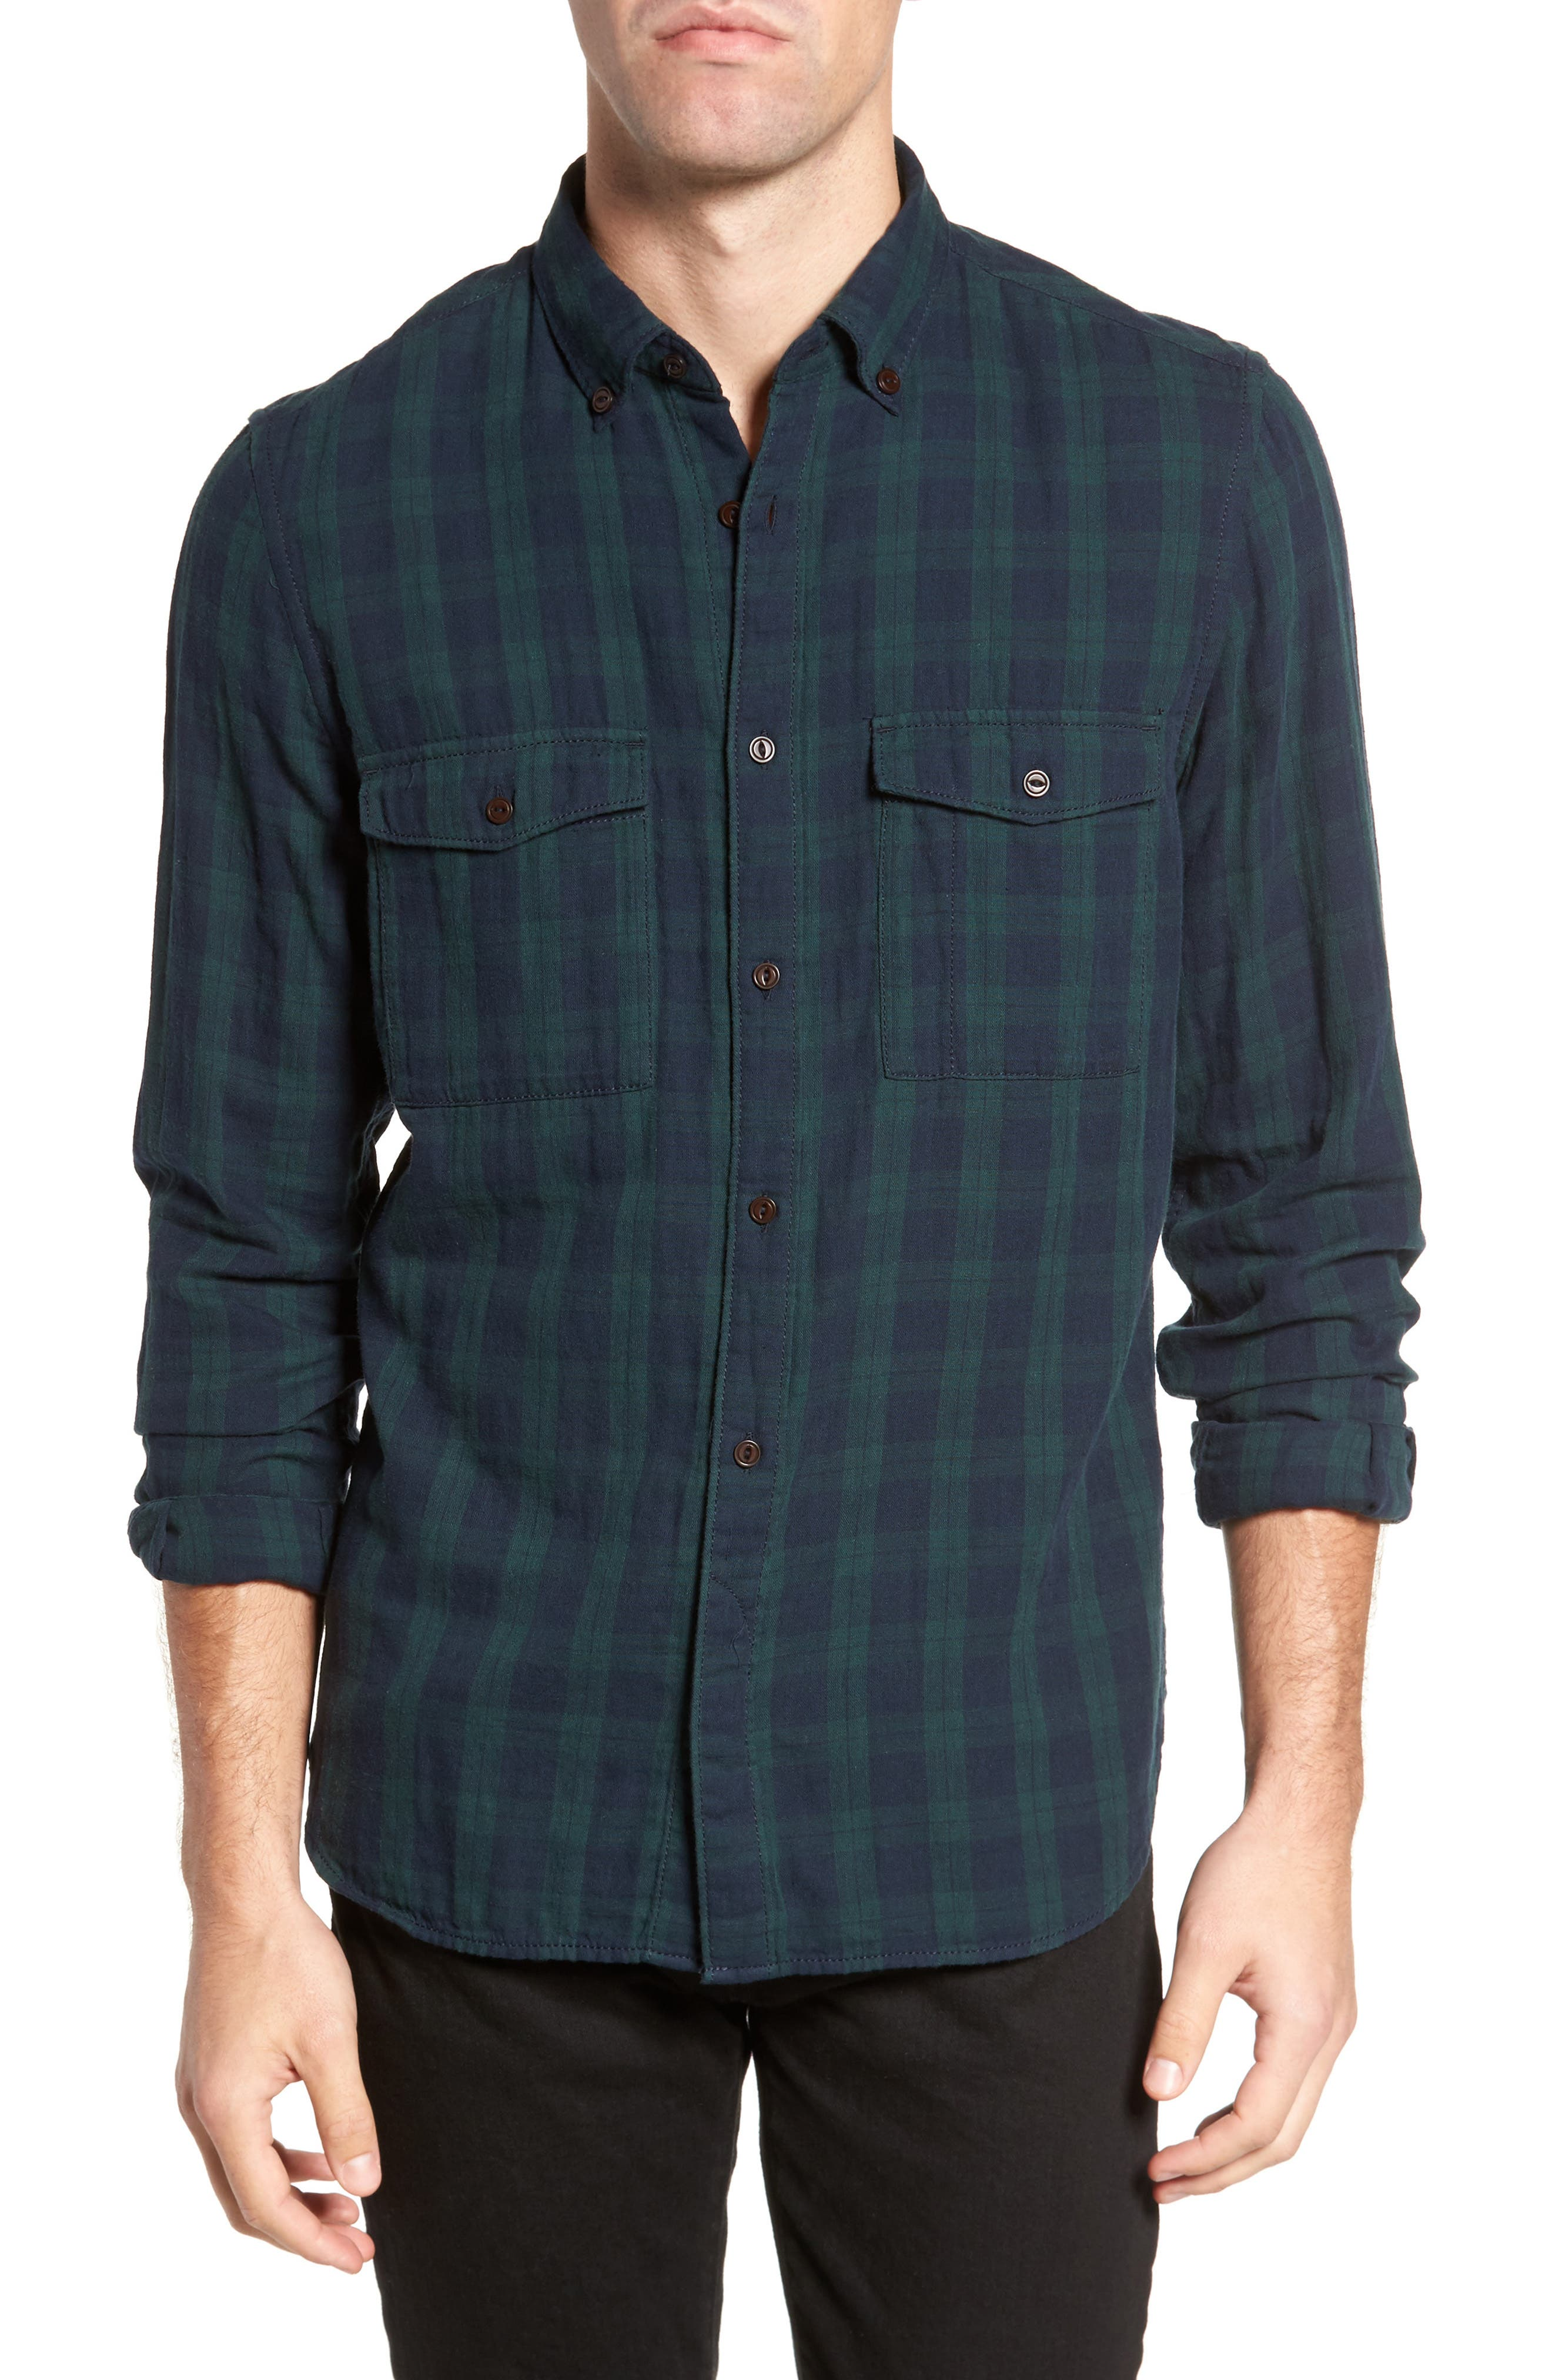 Alternate Image 1 Selected - French Connection Black Watch Double Check Sport Shirt